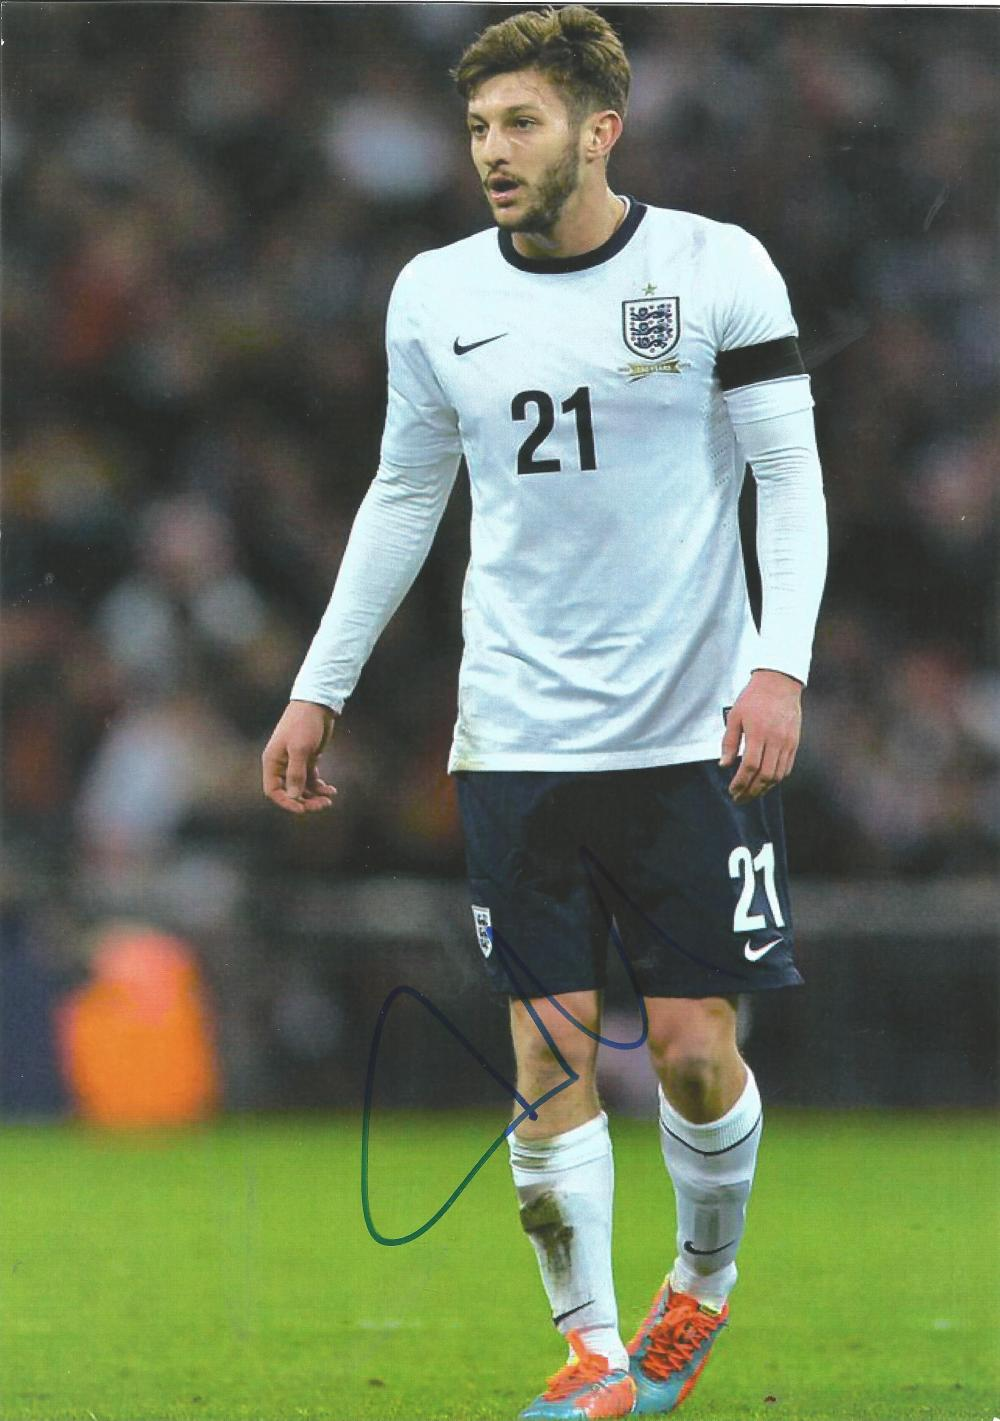 Football Adam Lallana signed 12x8 colour photo pictured while playing for England. Good condition.